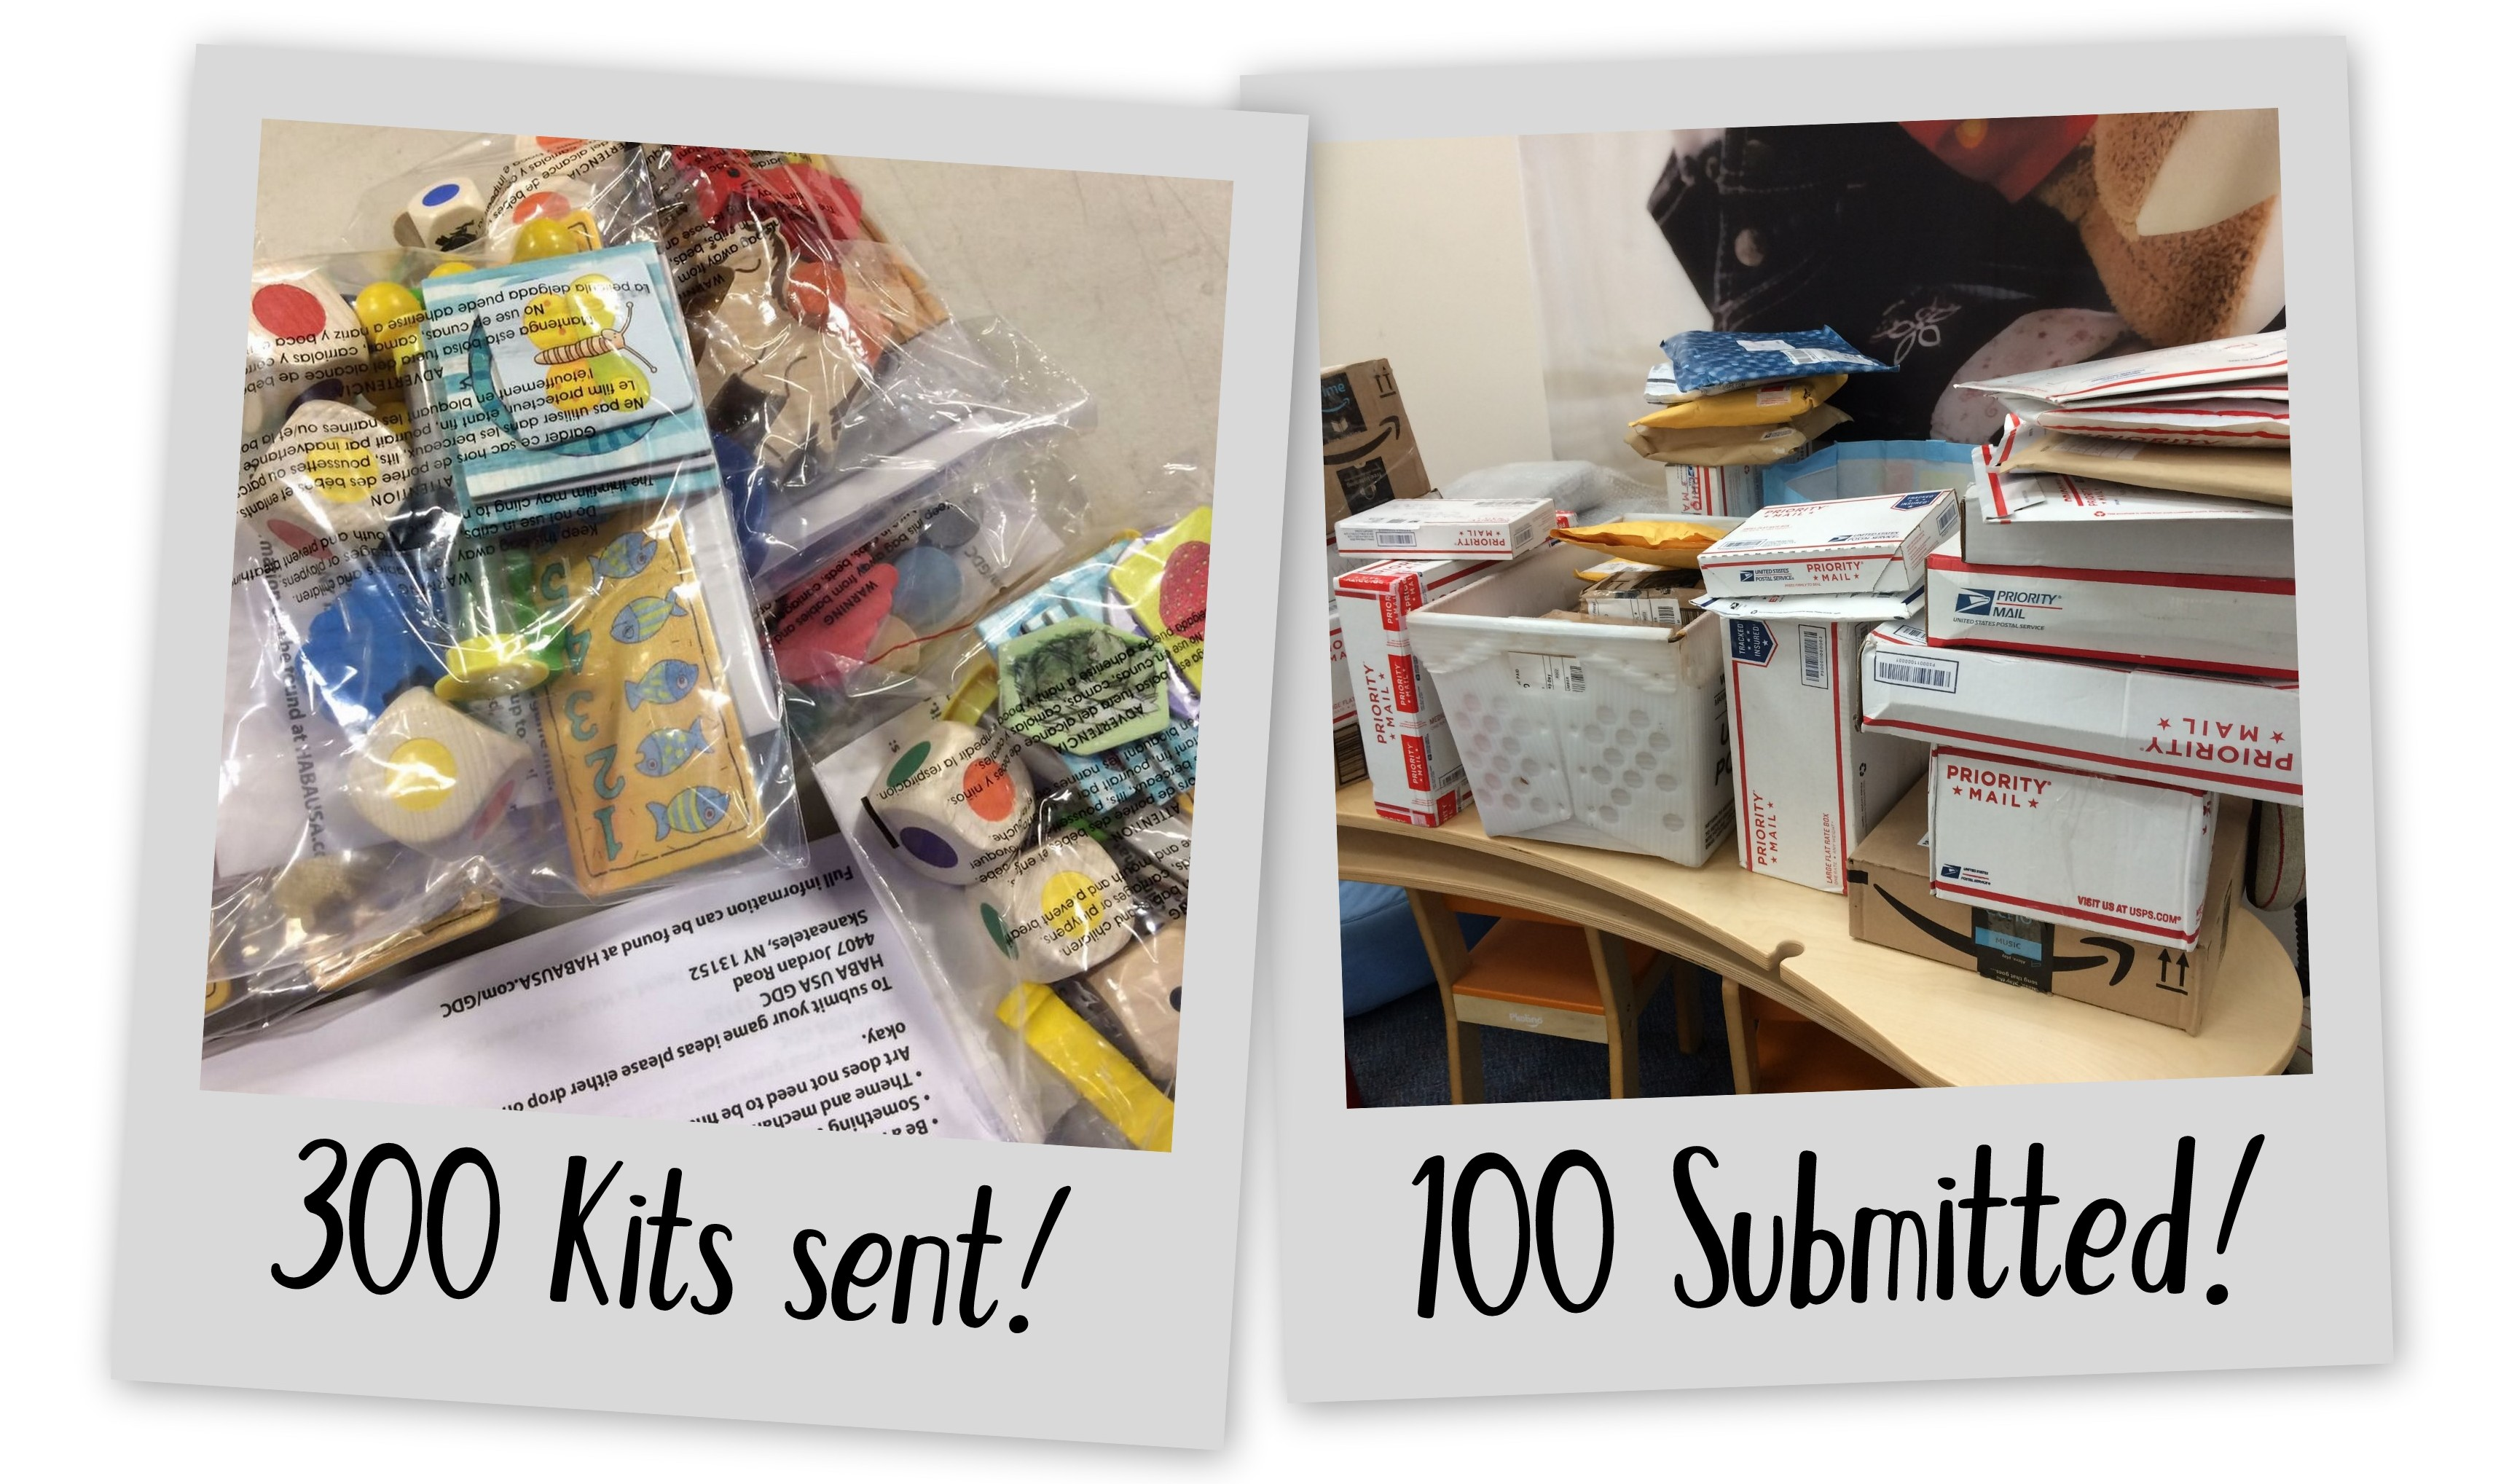 300 kits sent, 100 submitted